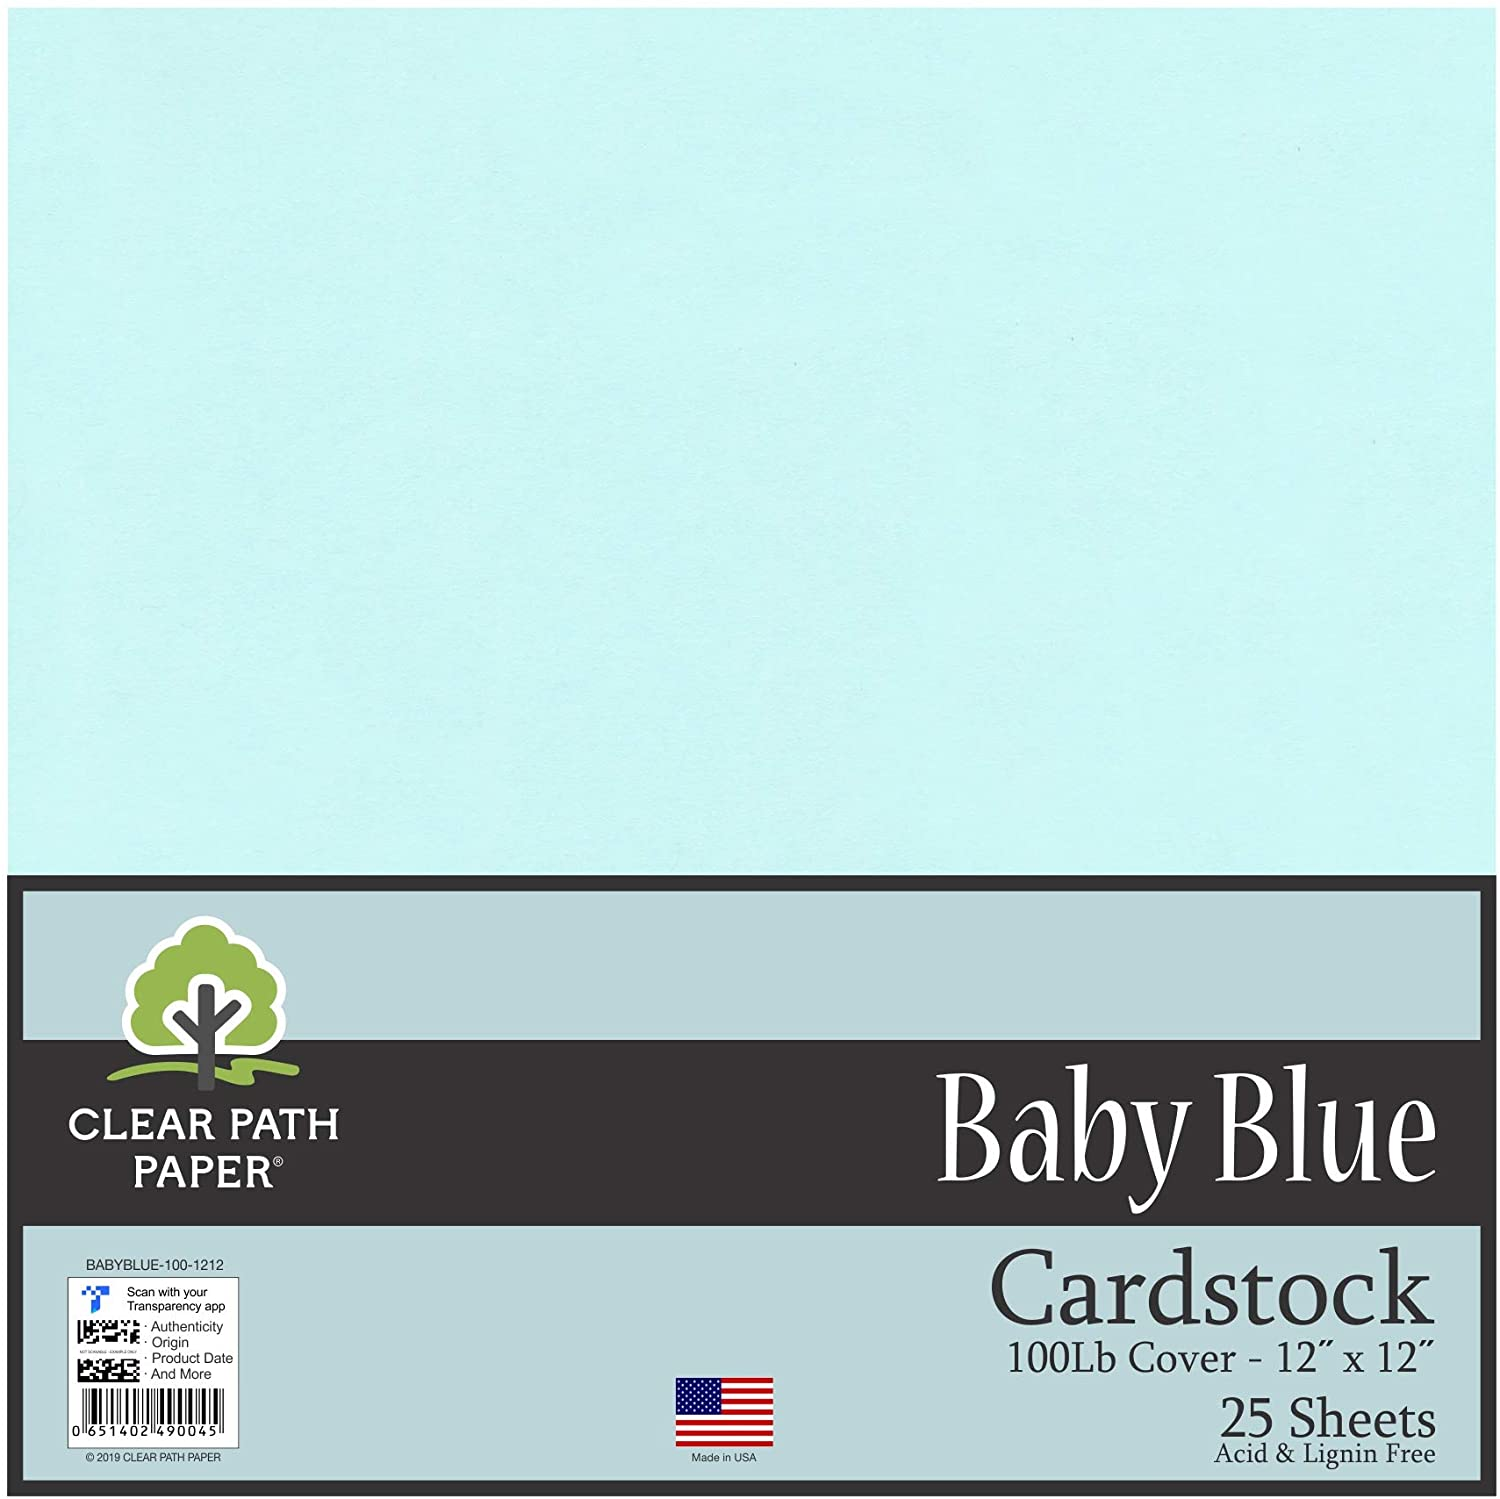 Baby Blue Cardstock - 12 x 12 inch - 100Lb Cover - 25 Sheets